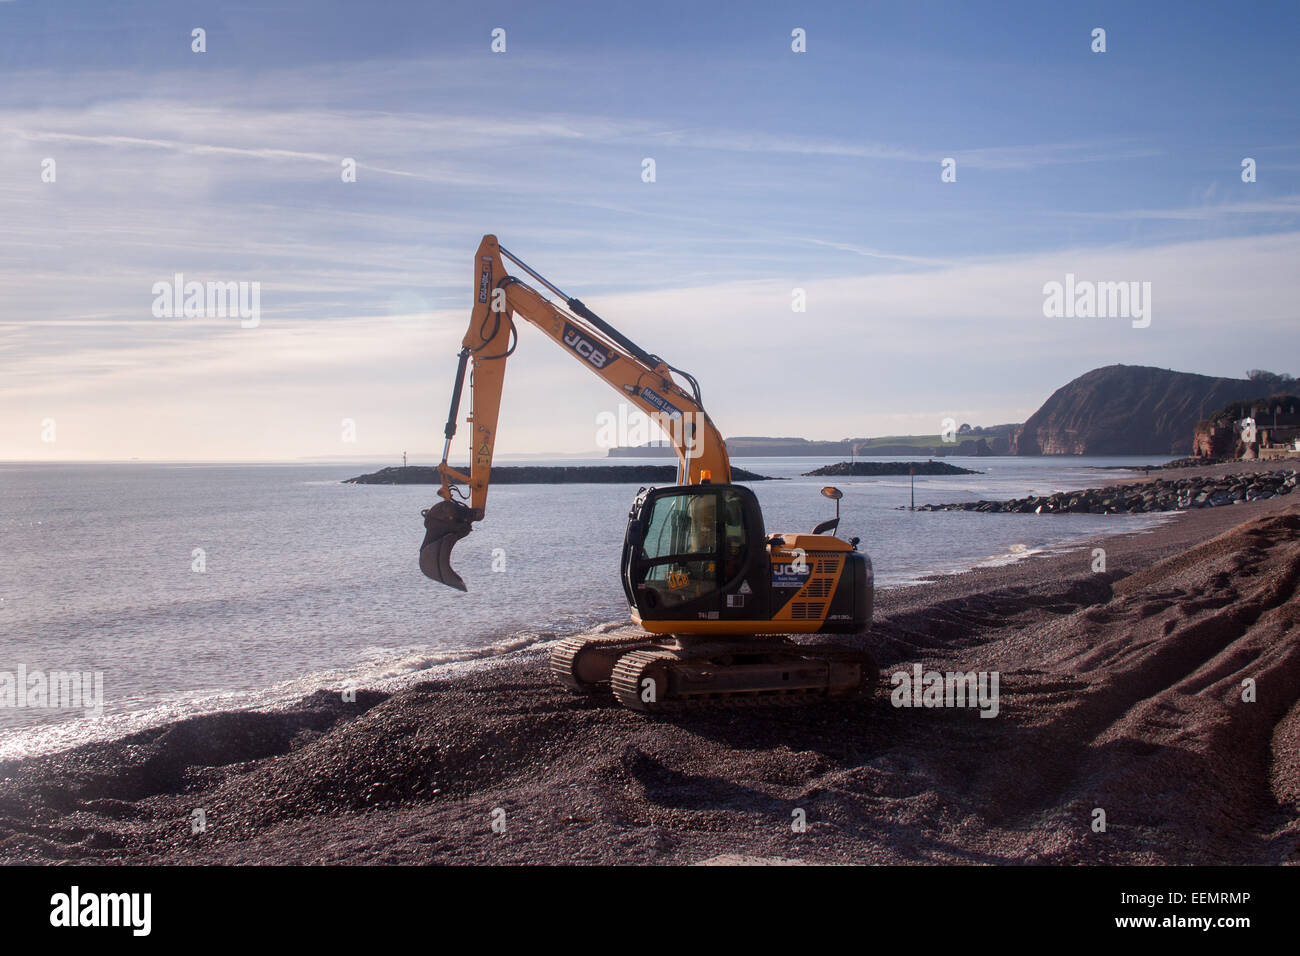 A JCB digger moves shingle on the beach at Sidmouth, Devon. - Stock Image